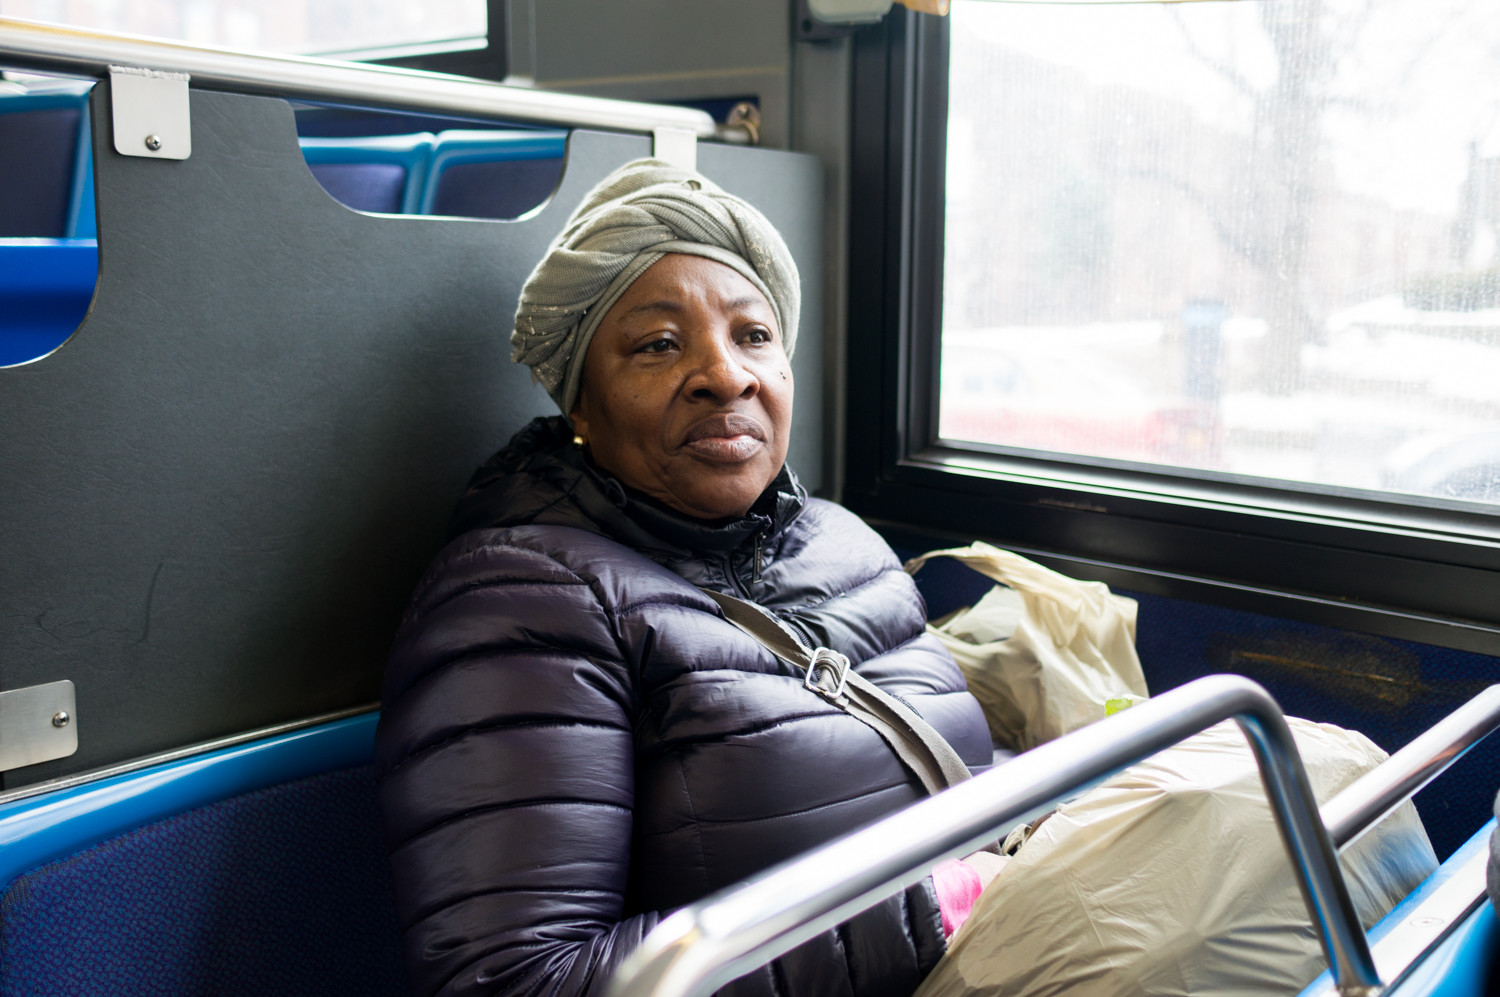 Elizabeth Bermudez relies on public transportation to get from where she lives in Morrisania to her job as a home health aide in Riverdale. The cost of all those rides adds up, and Bermudez says she would welcome reduced fares.